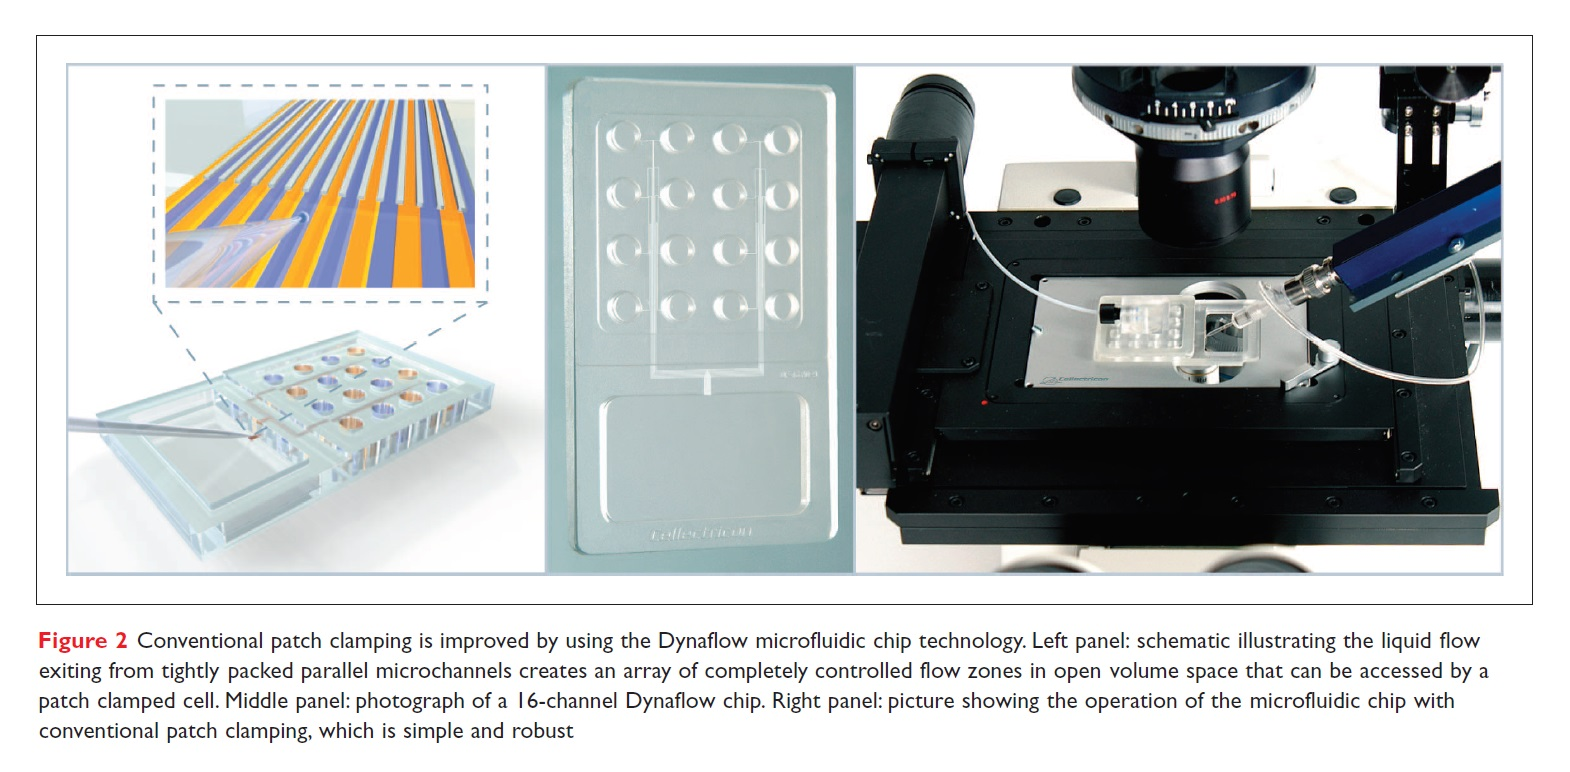 Figure 2 Conventional patch clamping is improved by using the Dynaflow microfluidic chip technology